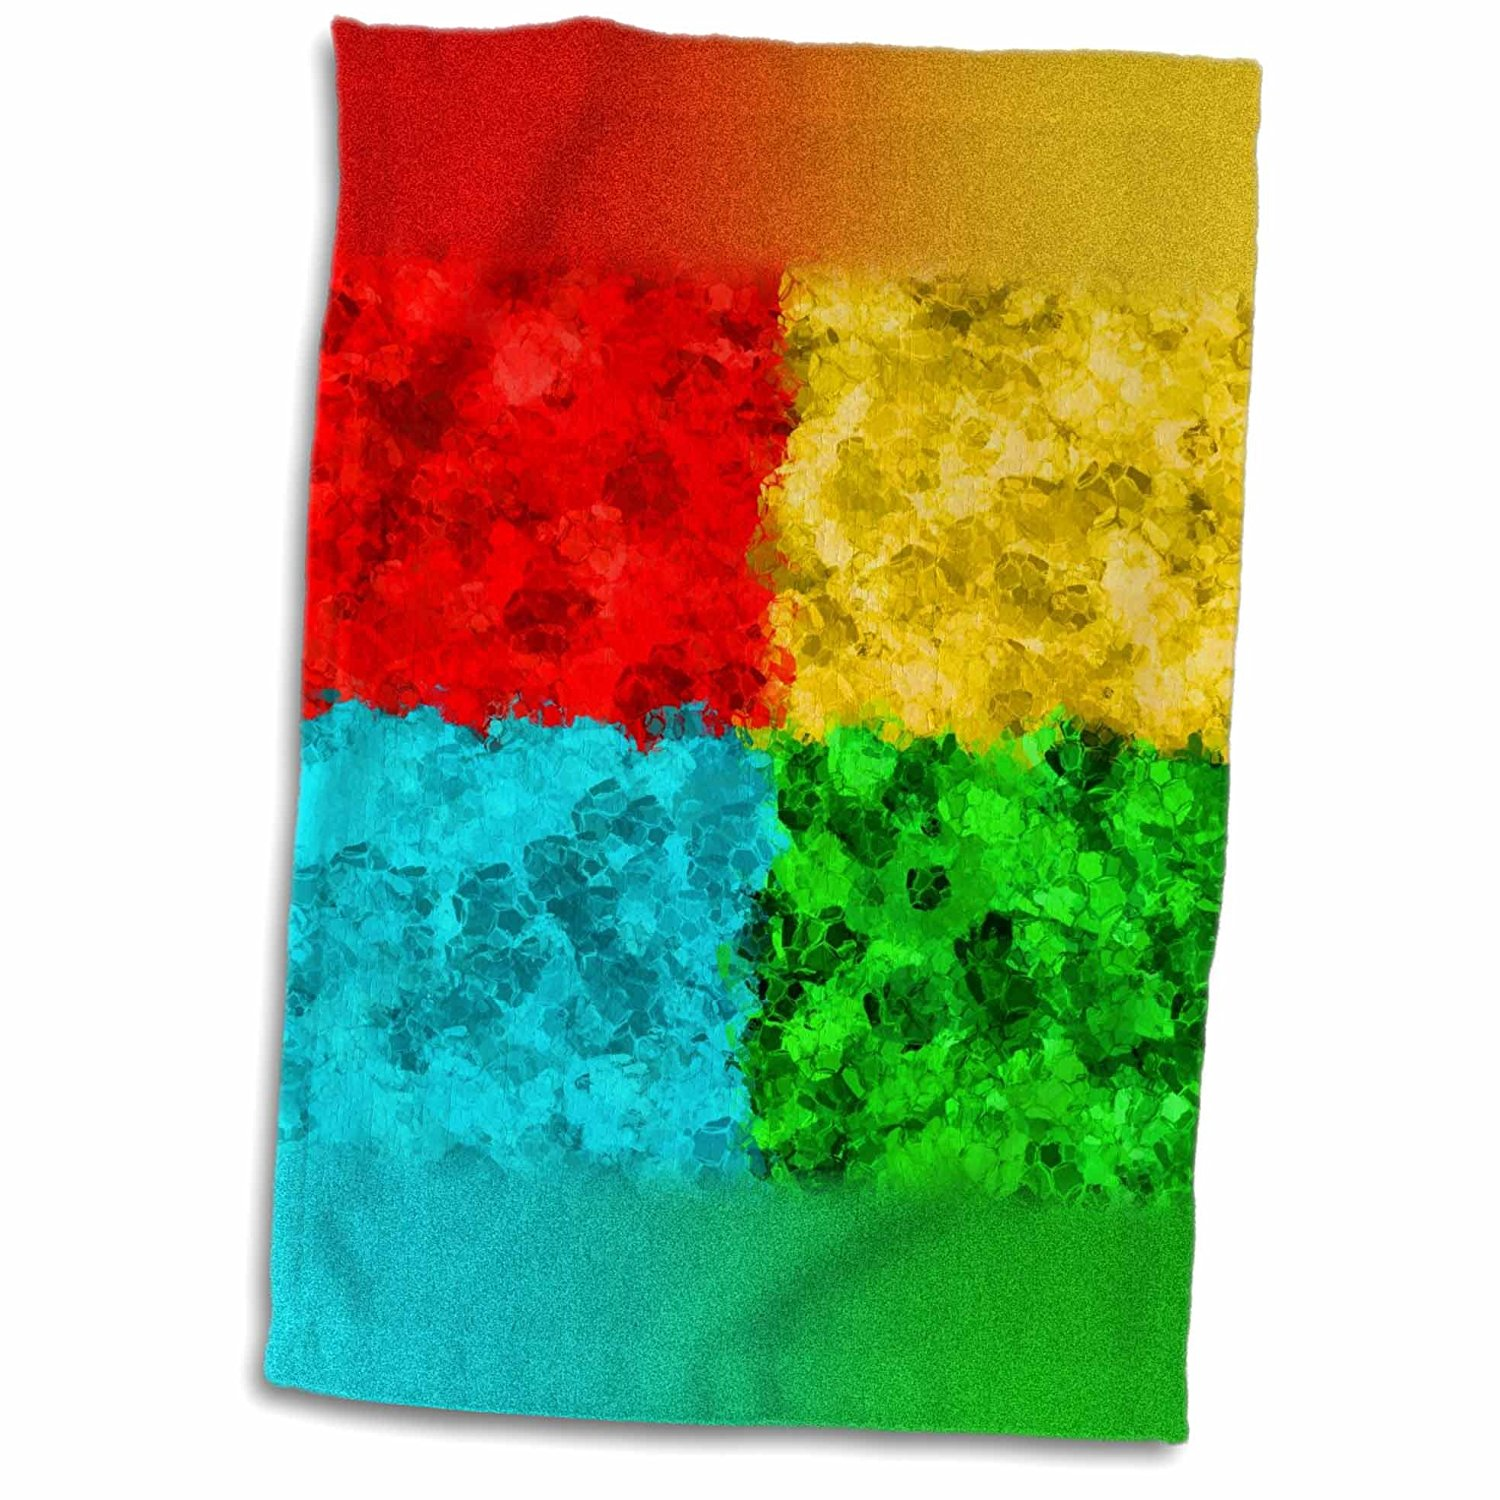 3dRose Russ Billington Designs - Abstract Design in Primary Colors - 12x18 Towel (twl_239116_1)